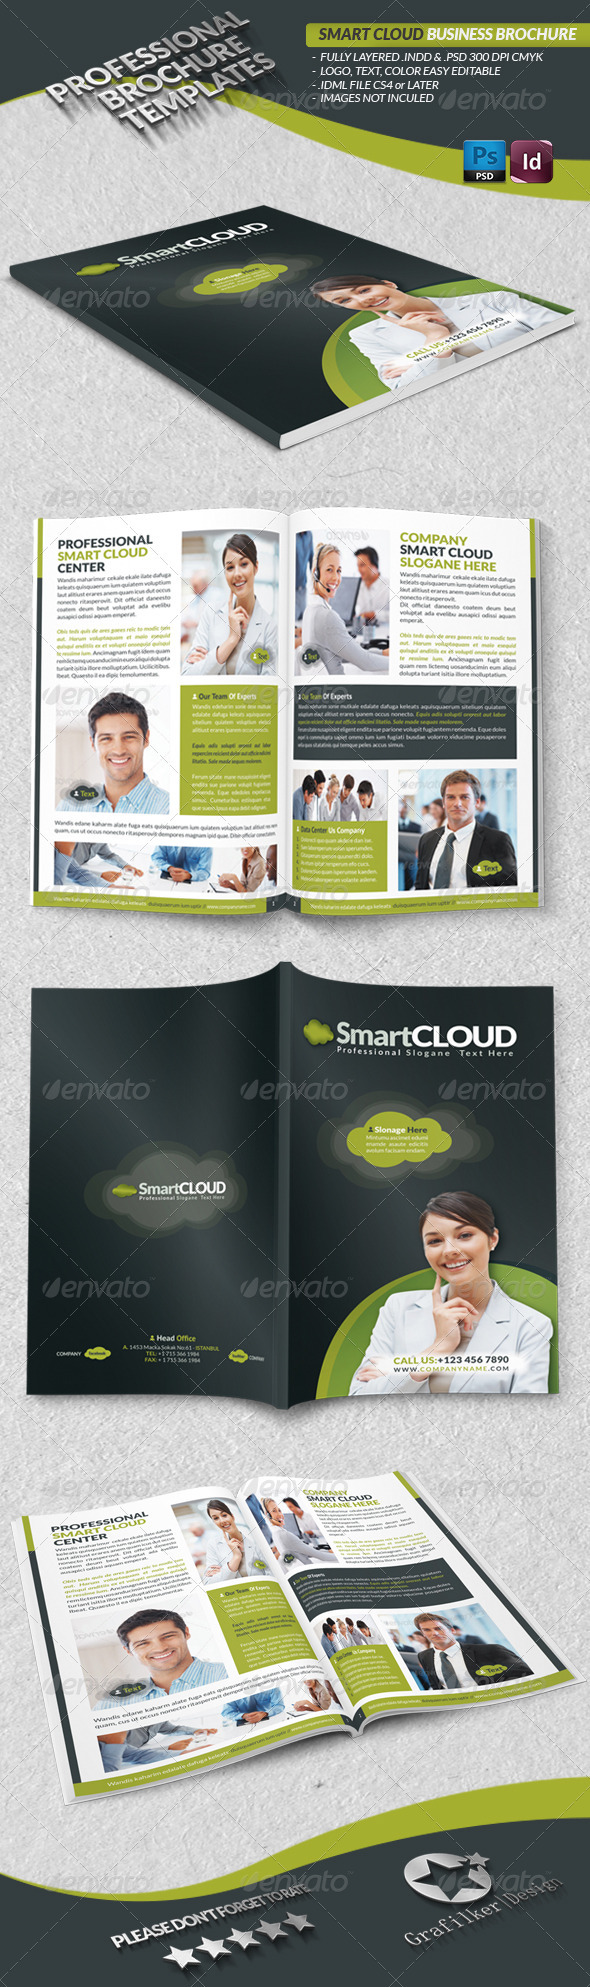 GraphicRiver Smart Cloud Business Brochure 3762090